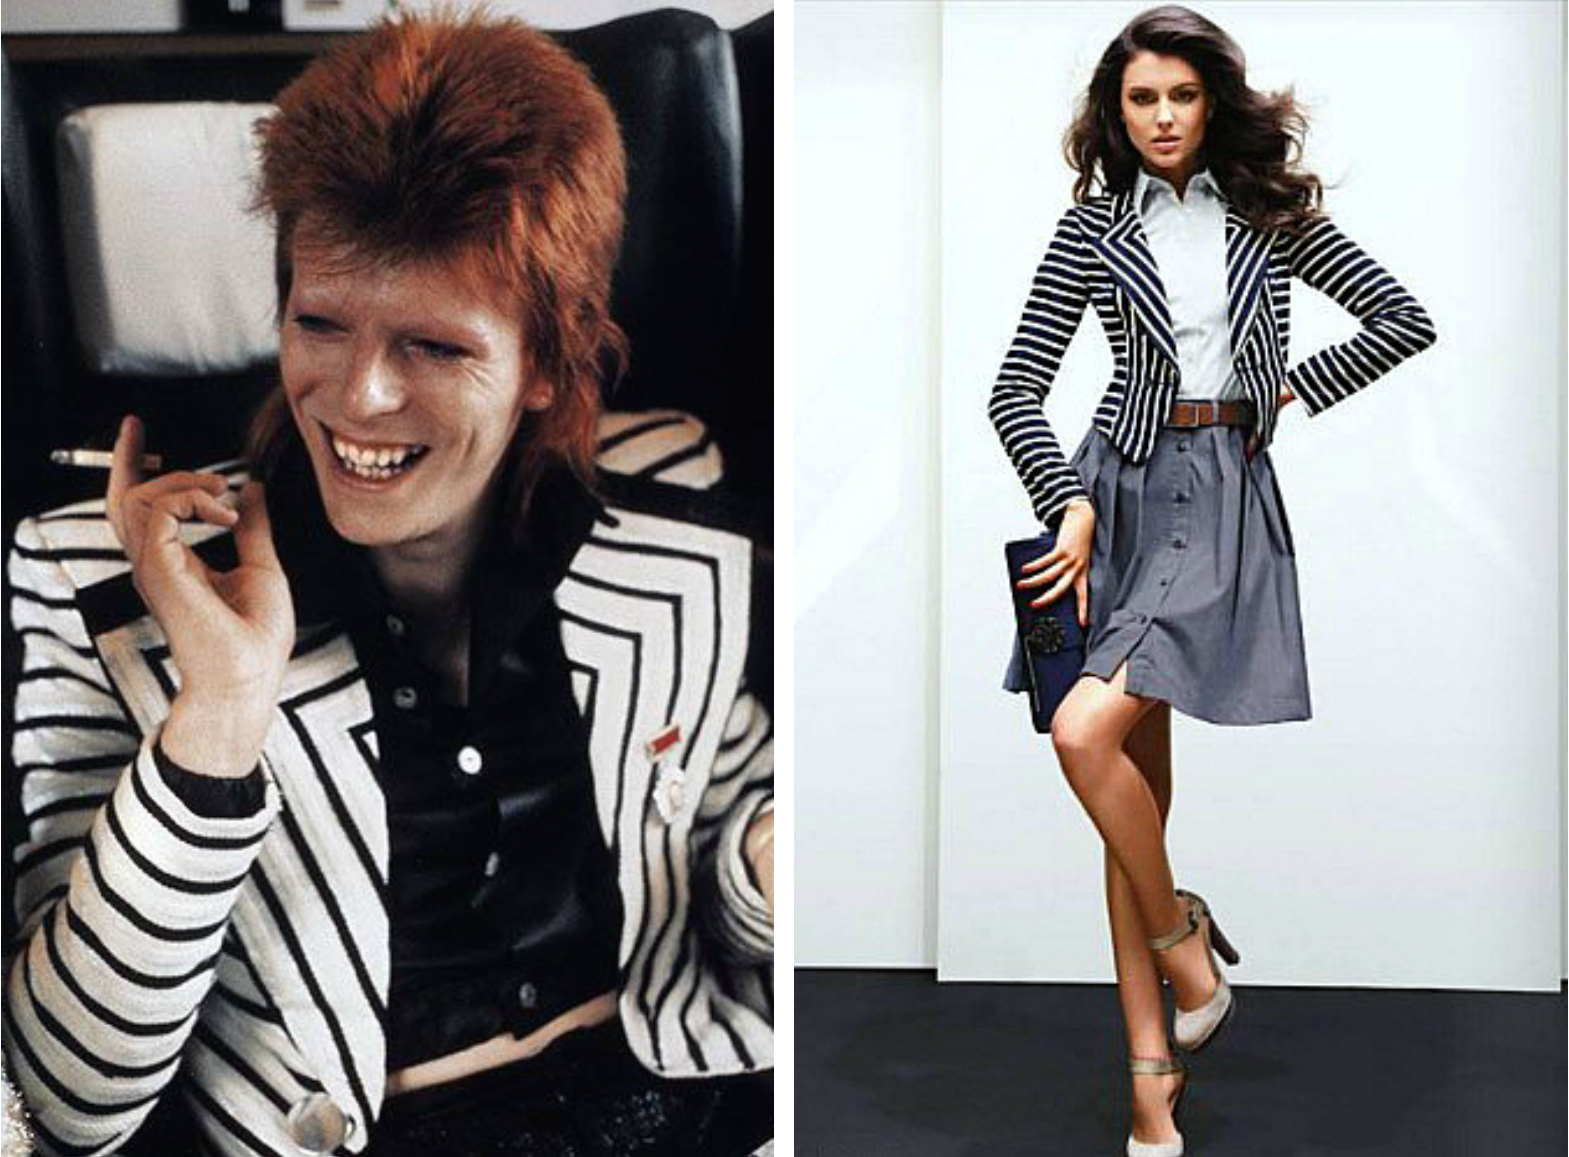 From left to right:David Bowie as Ziggy Stardust in 1970 wearing a  Kansai Yamamoto suit jacket , and a black and white suit jacket featured in street style for womenswear.